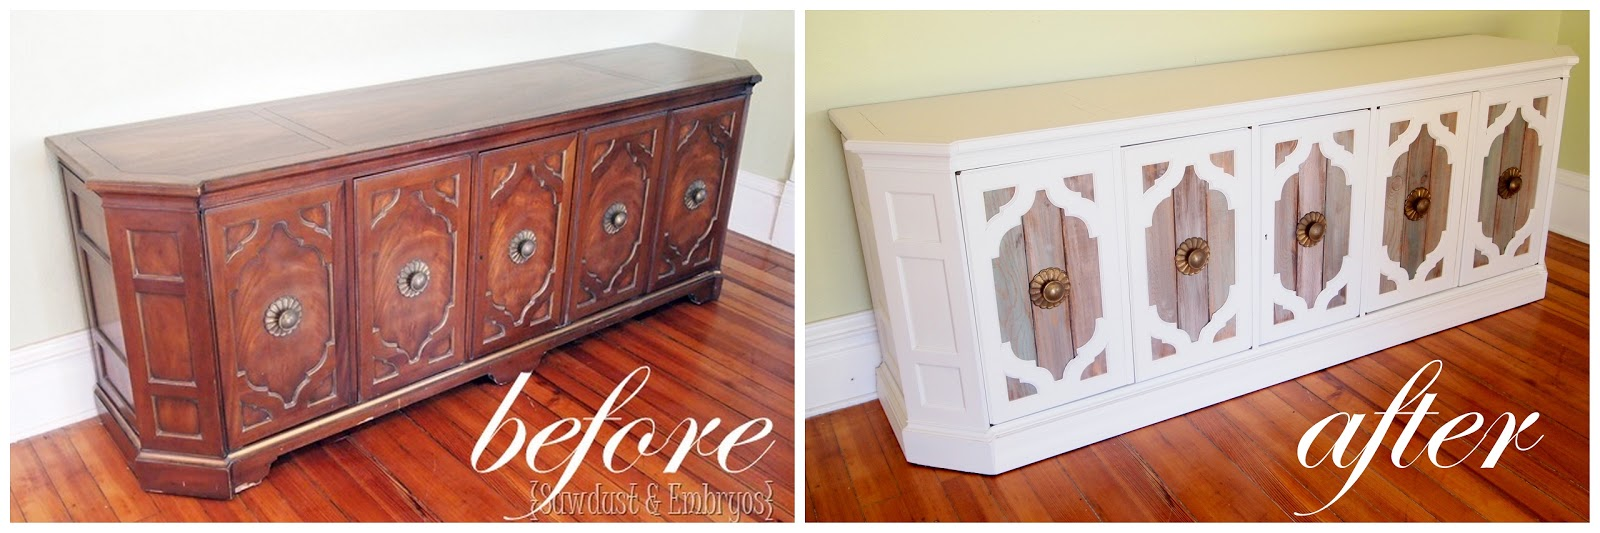 [Credenza-Before-and-After-Sawdust-an%255B1%255D.jpg]